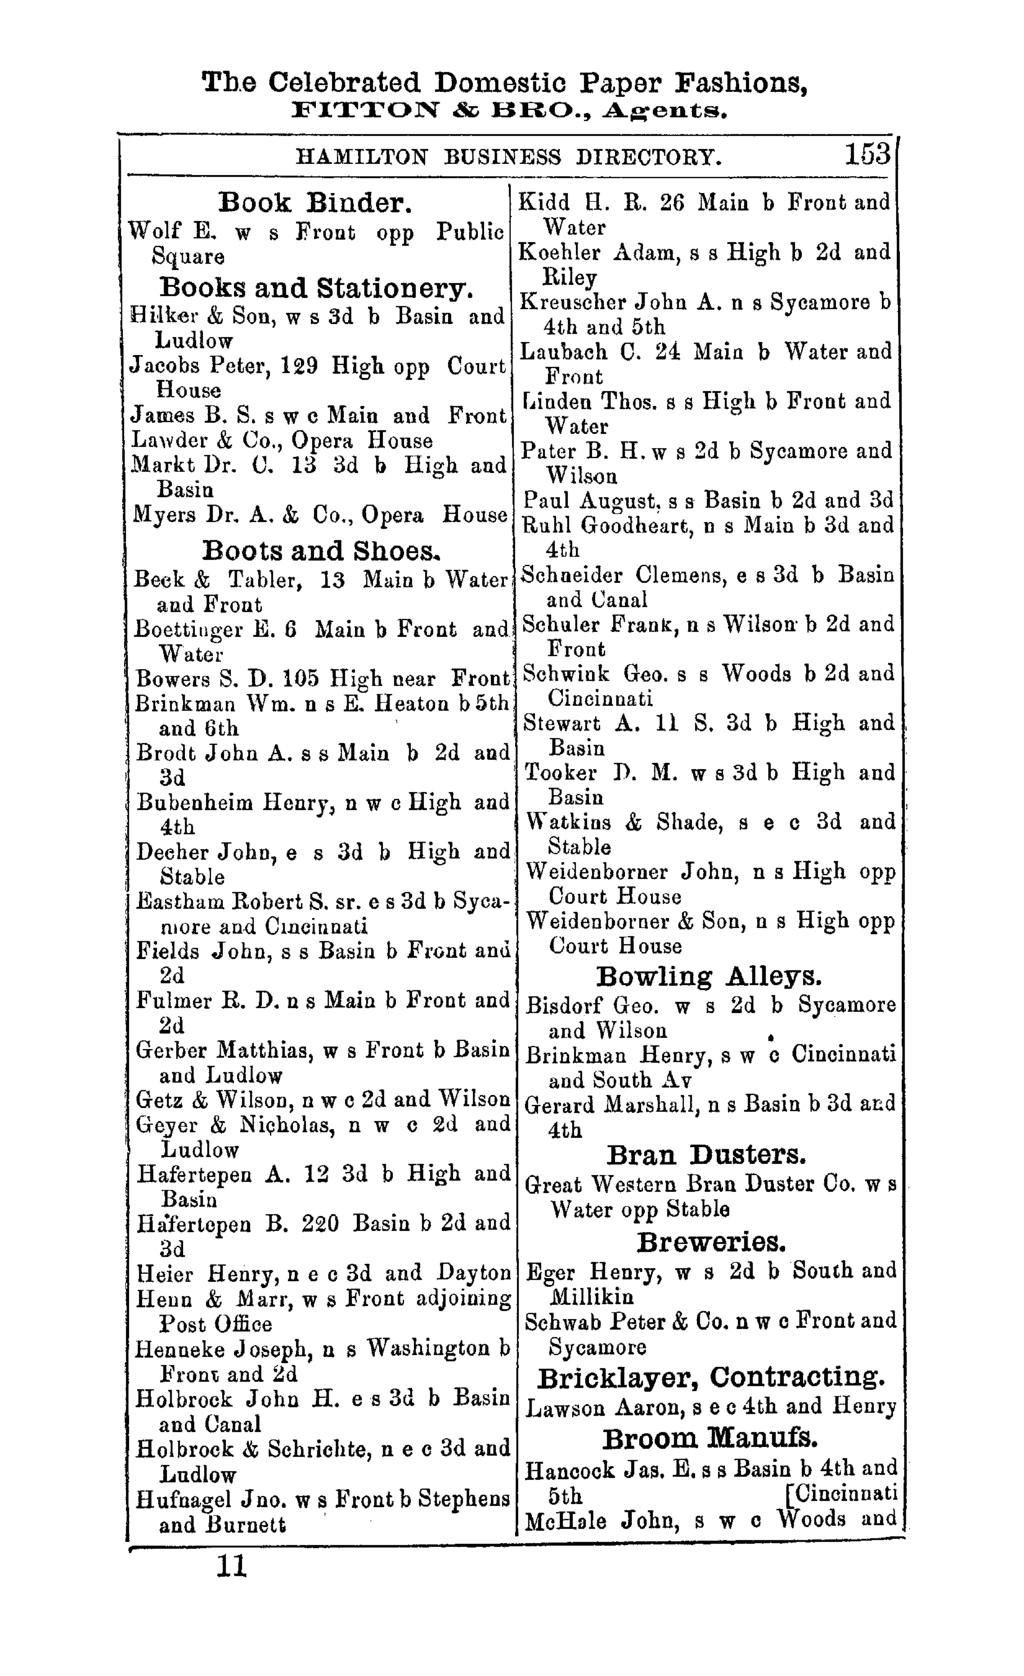 The Celebrated Domestic Paper Fashions, FITTON & BRO., A~ent;s. HAMILTON BUSINESS DIRECTORY. 103 Book Binder. Wolf E. w s Front opp Public Square Books and Stationery. Kidd H. R.